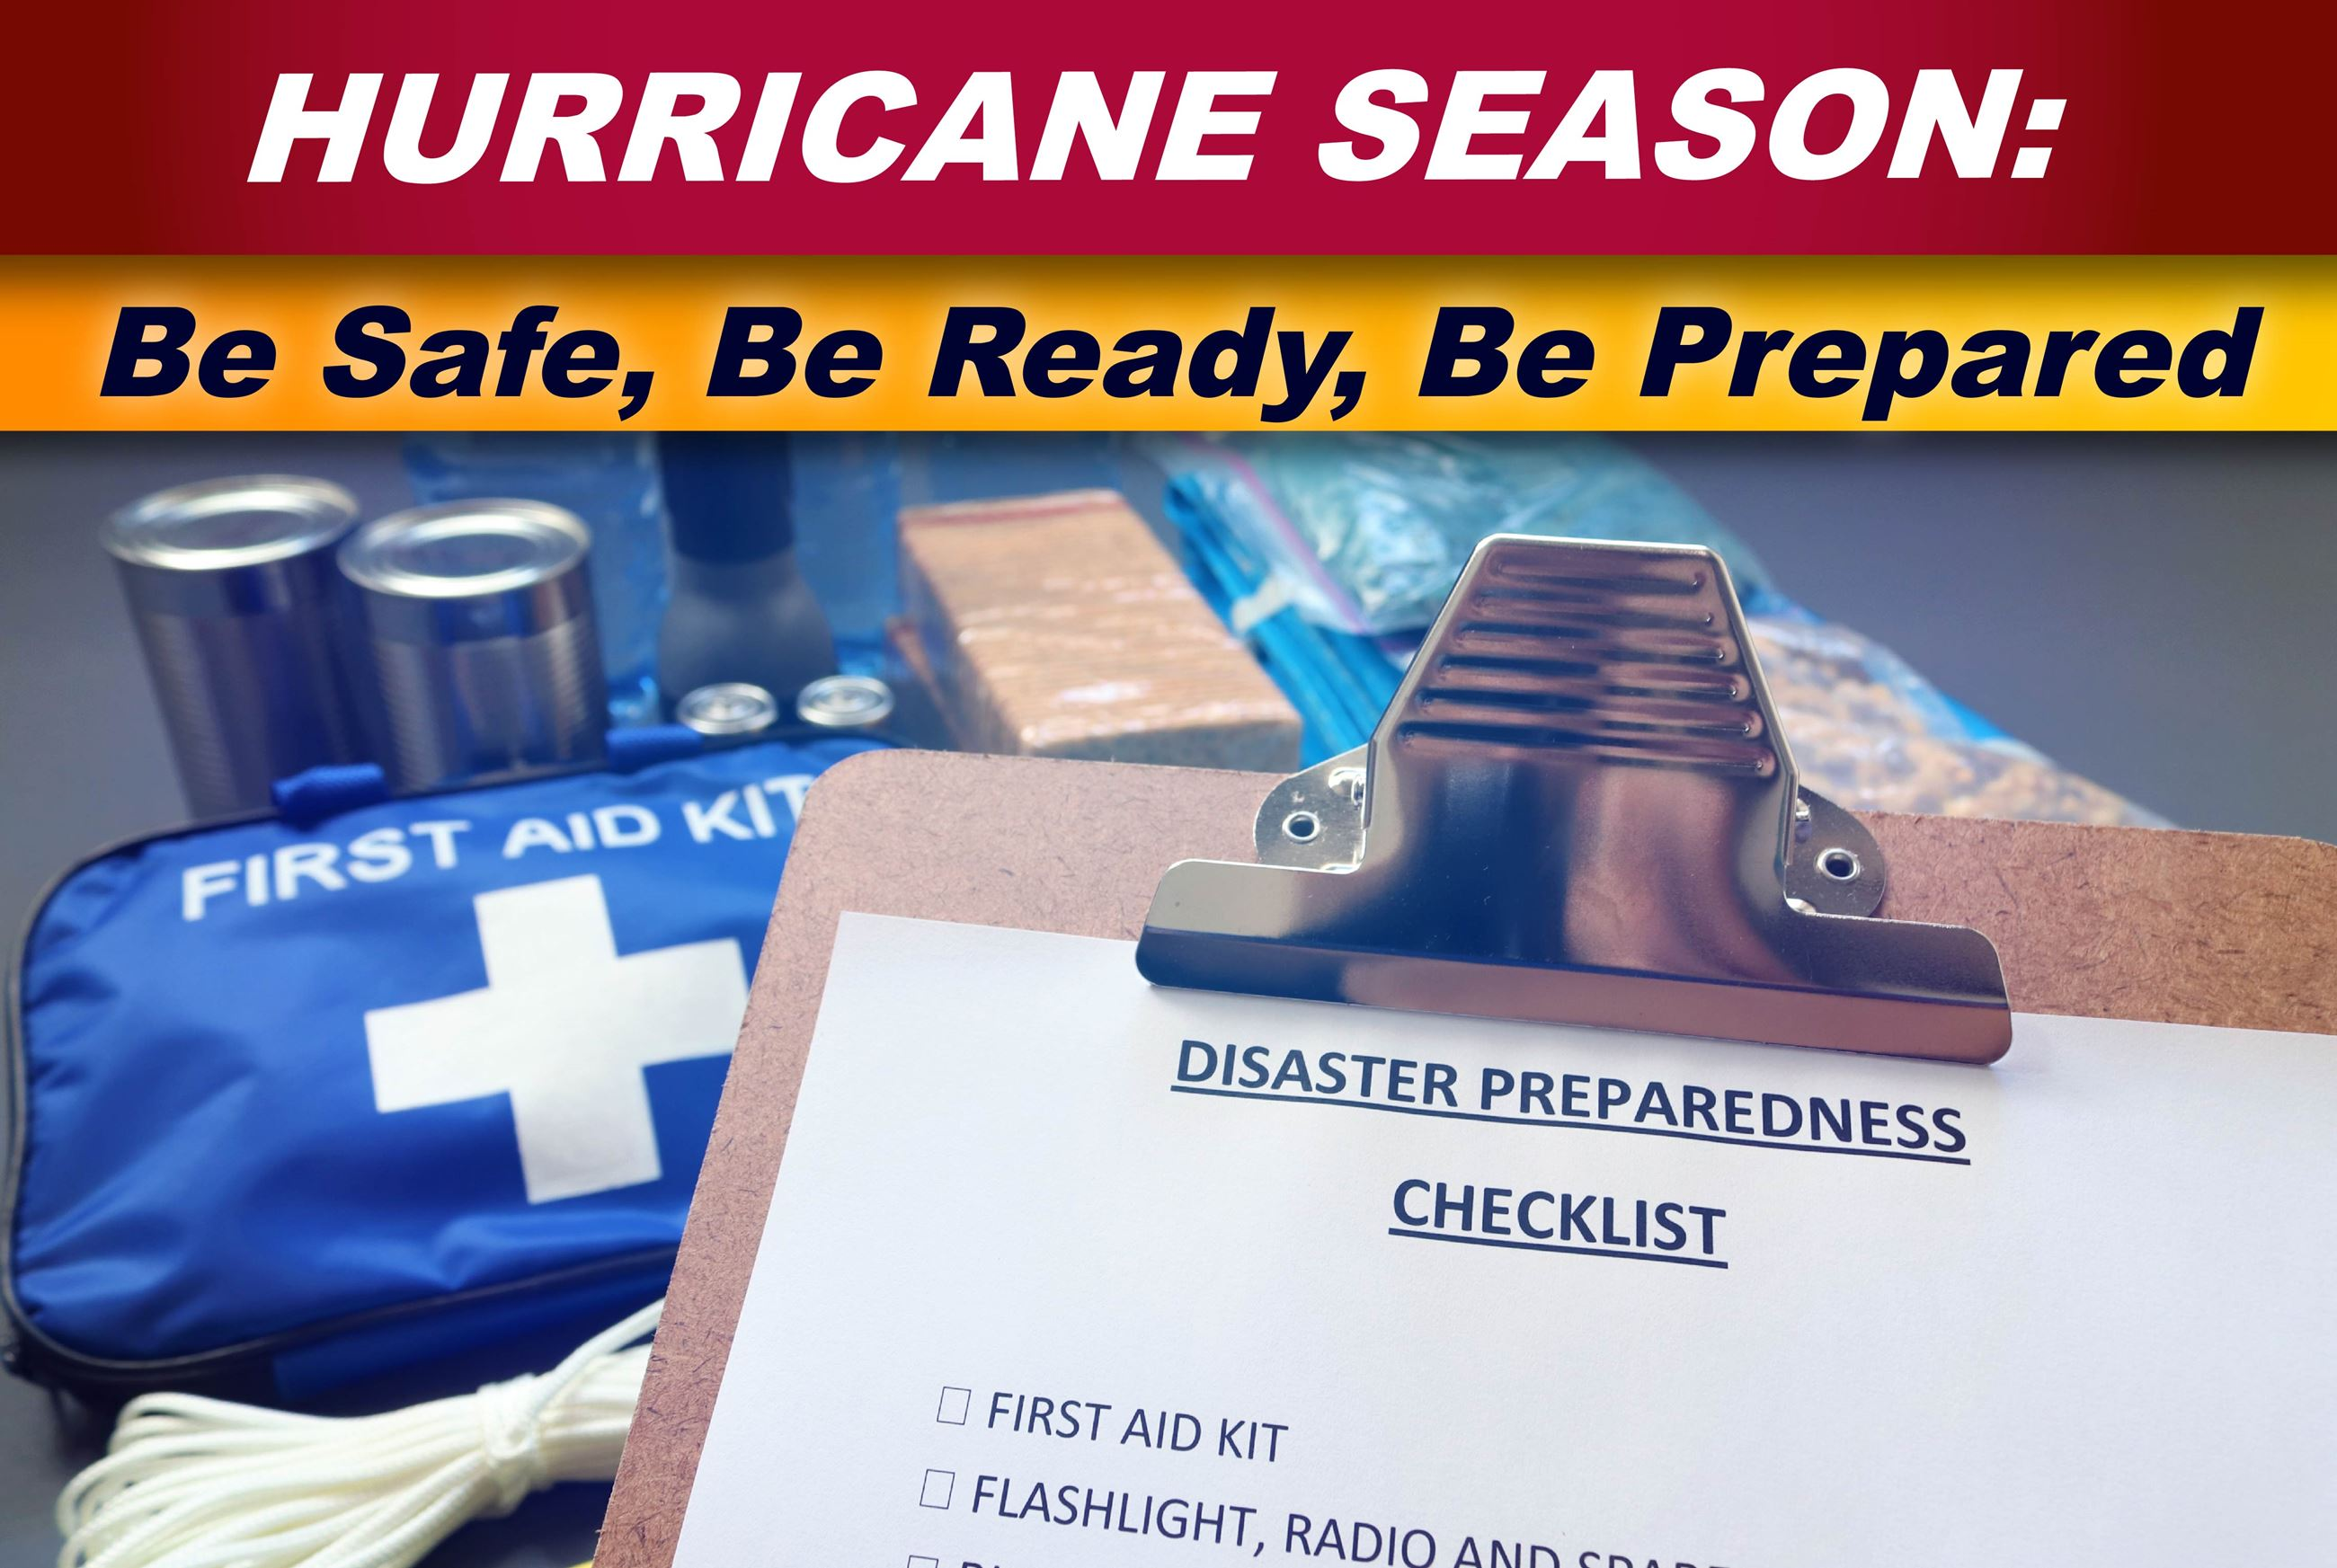 Be Safe Be Ready Be Prepared